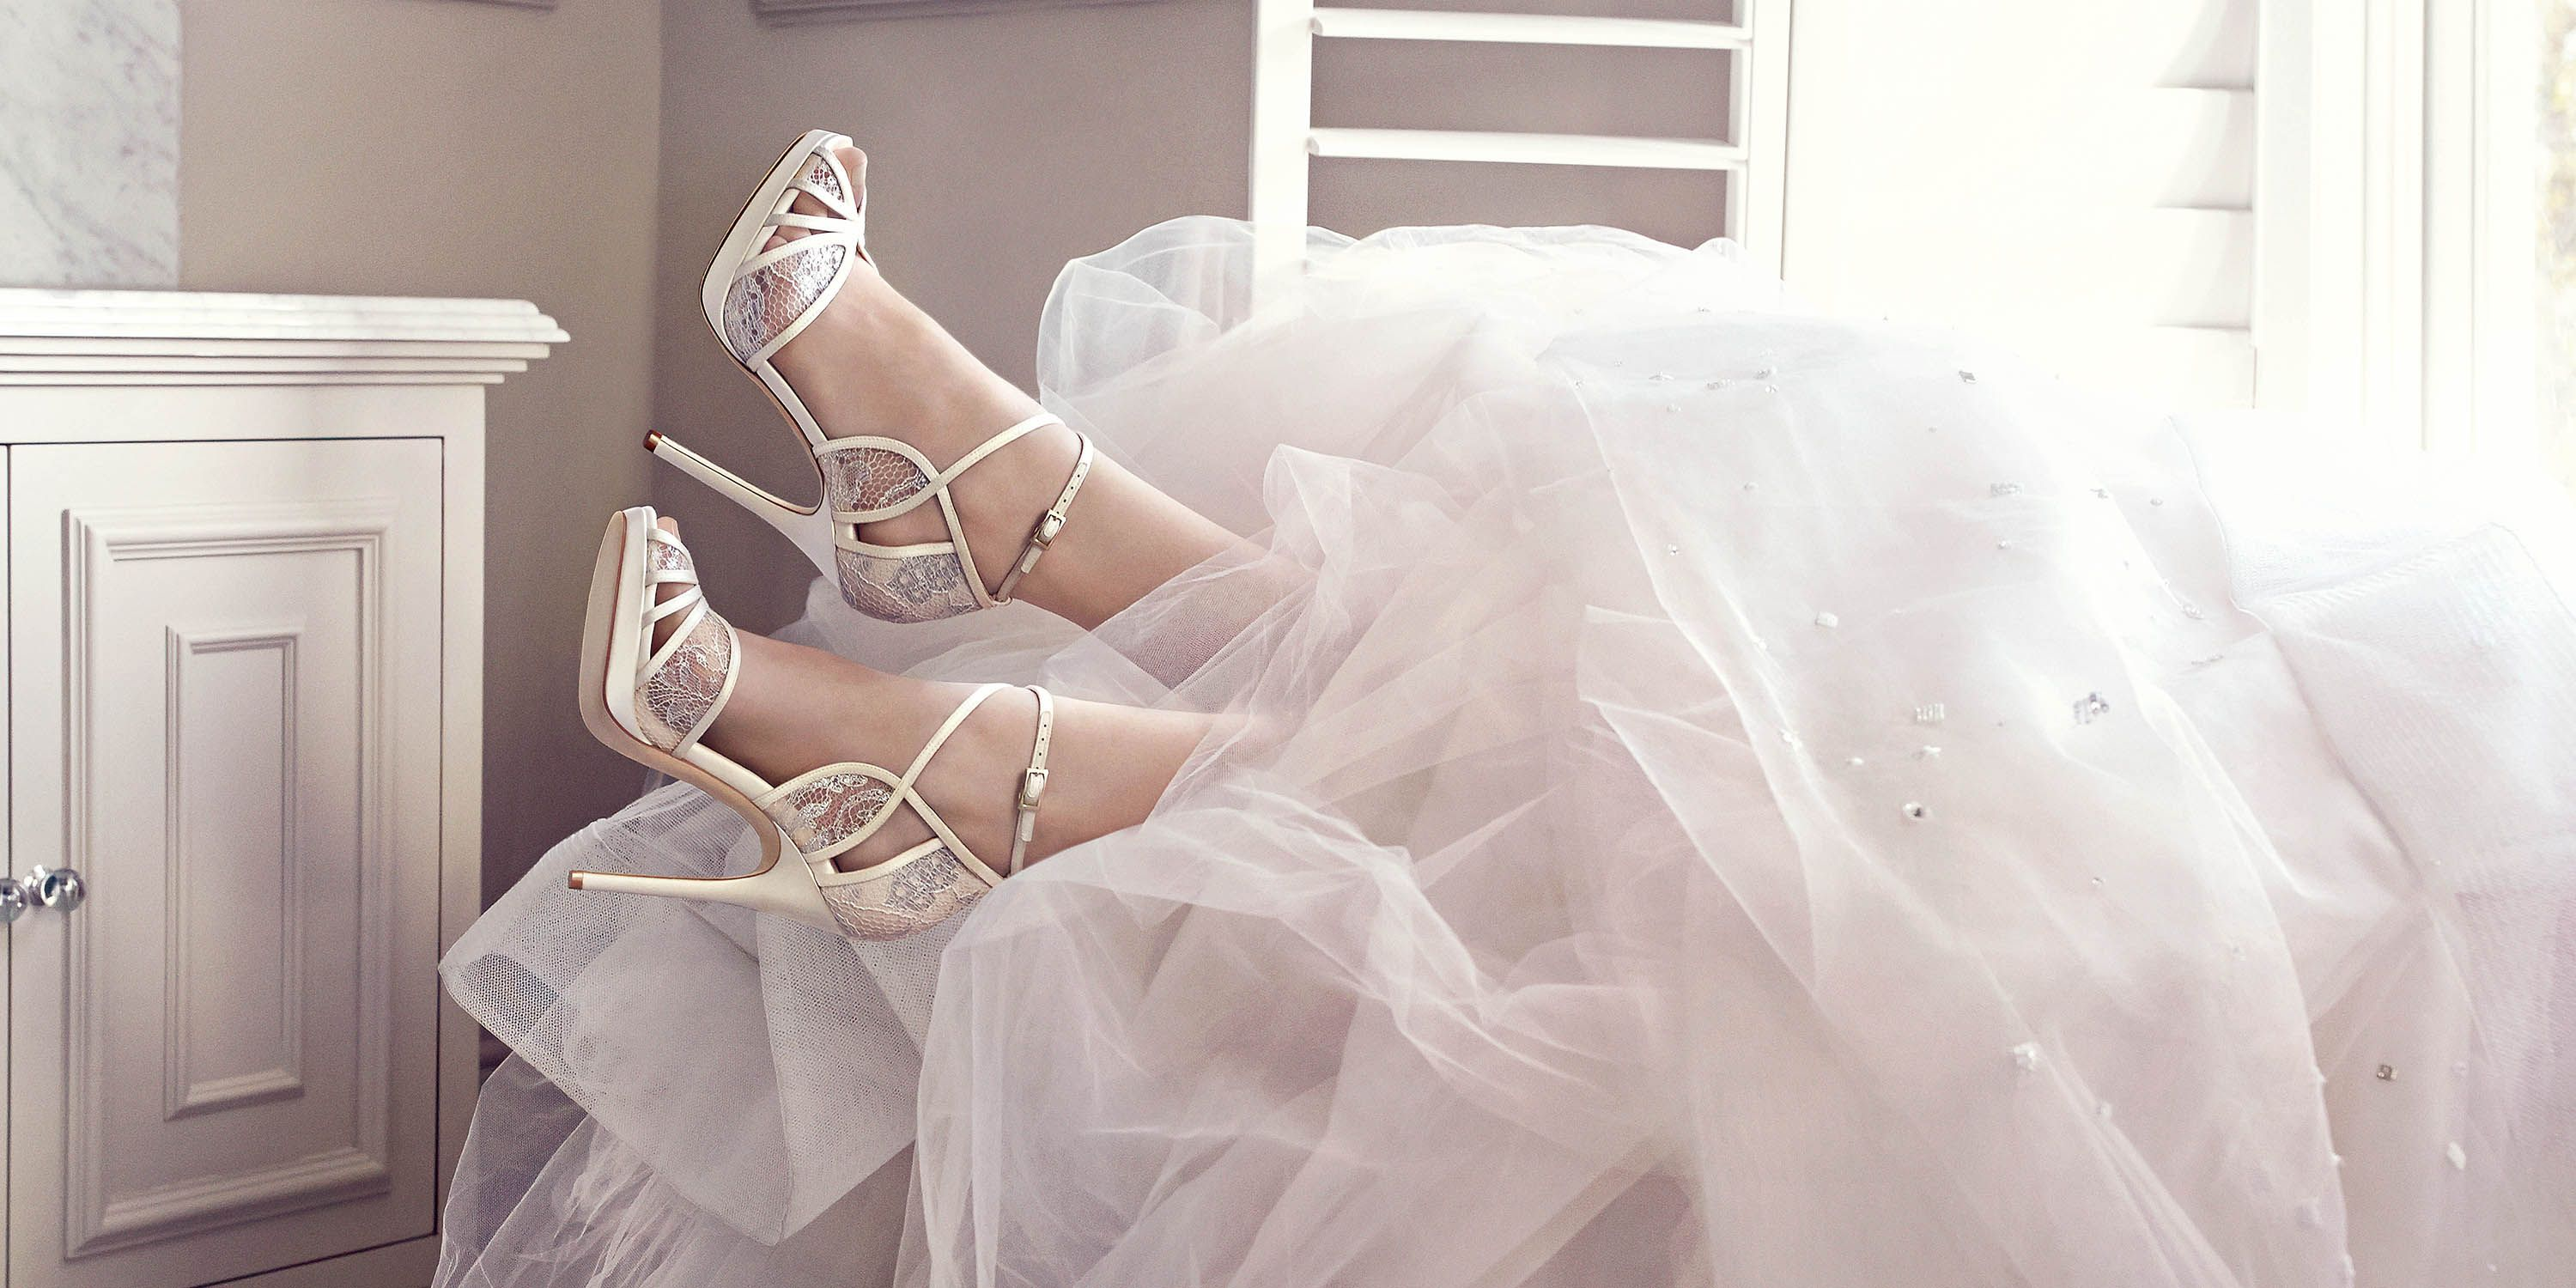 Jimmy Choo Unveils New Bridal Campaign Get A Sneak K At S Shoes